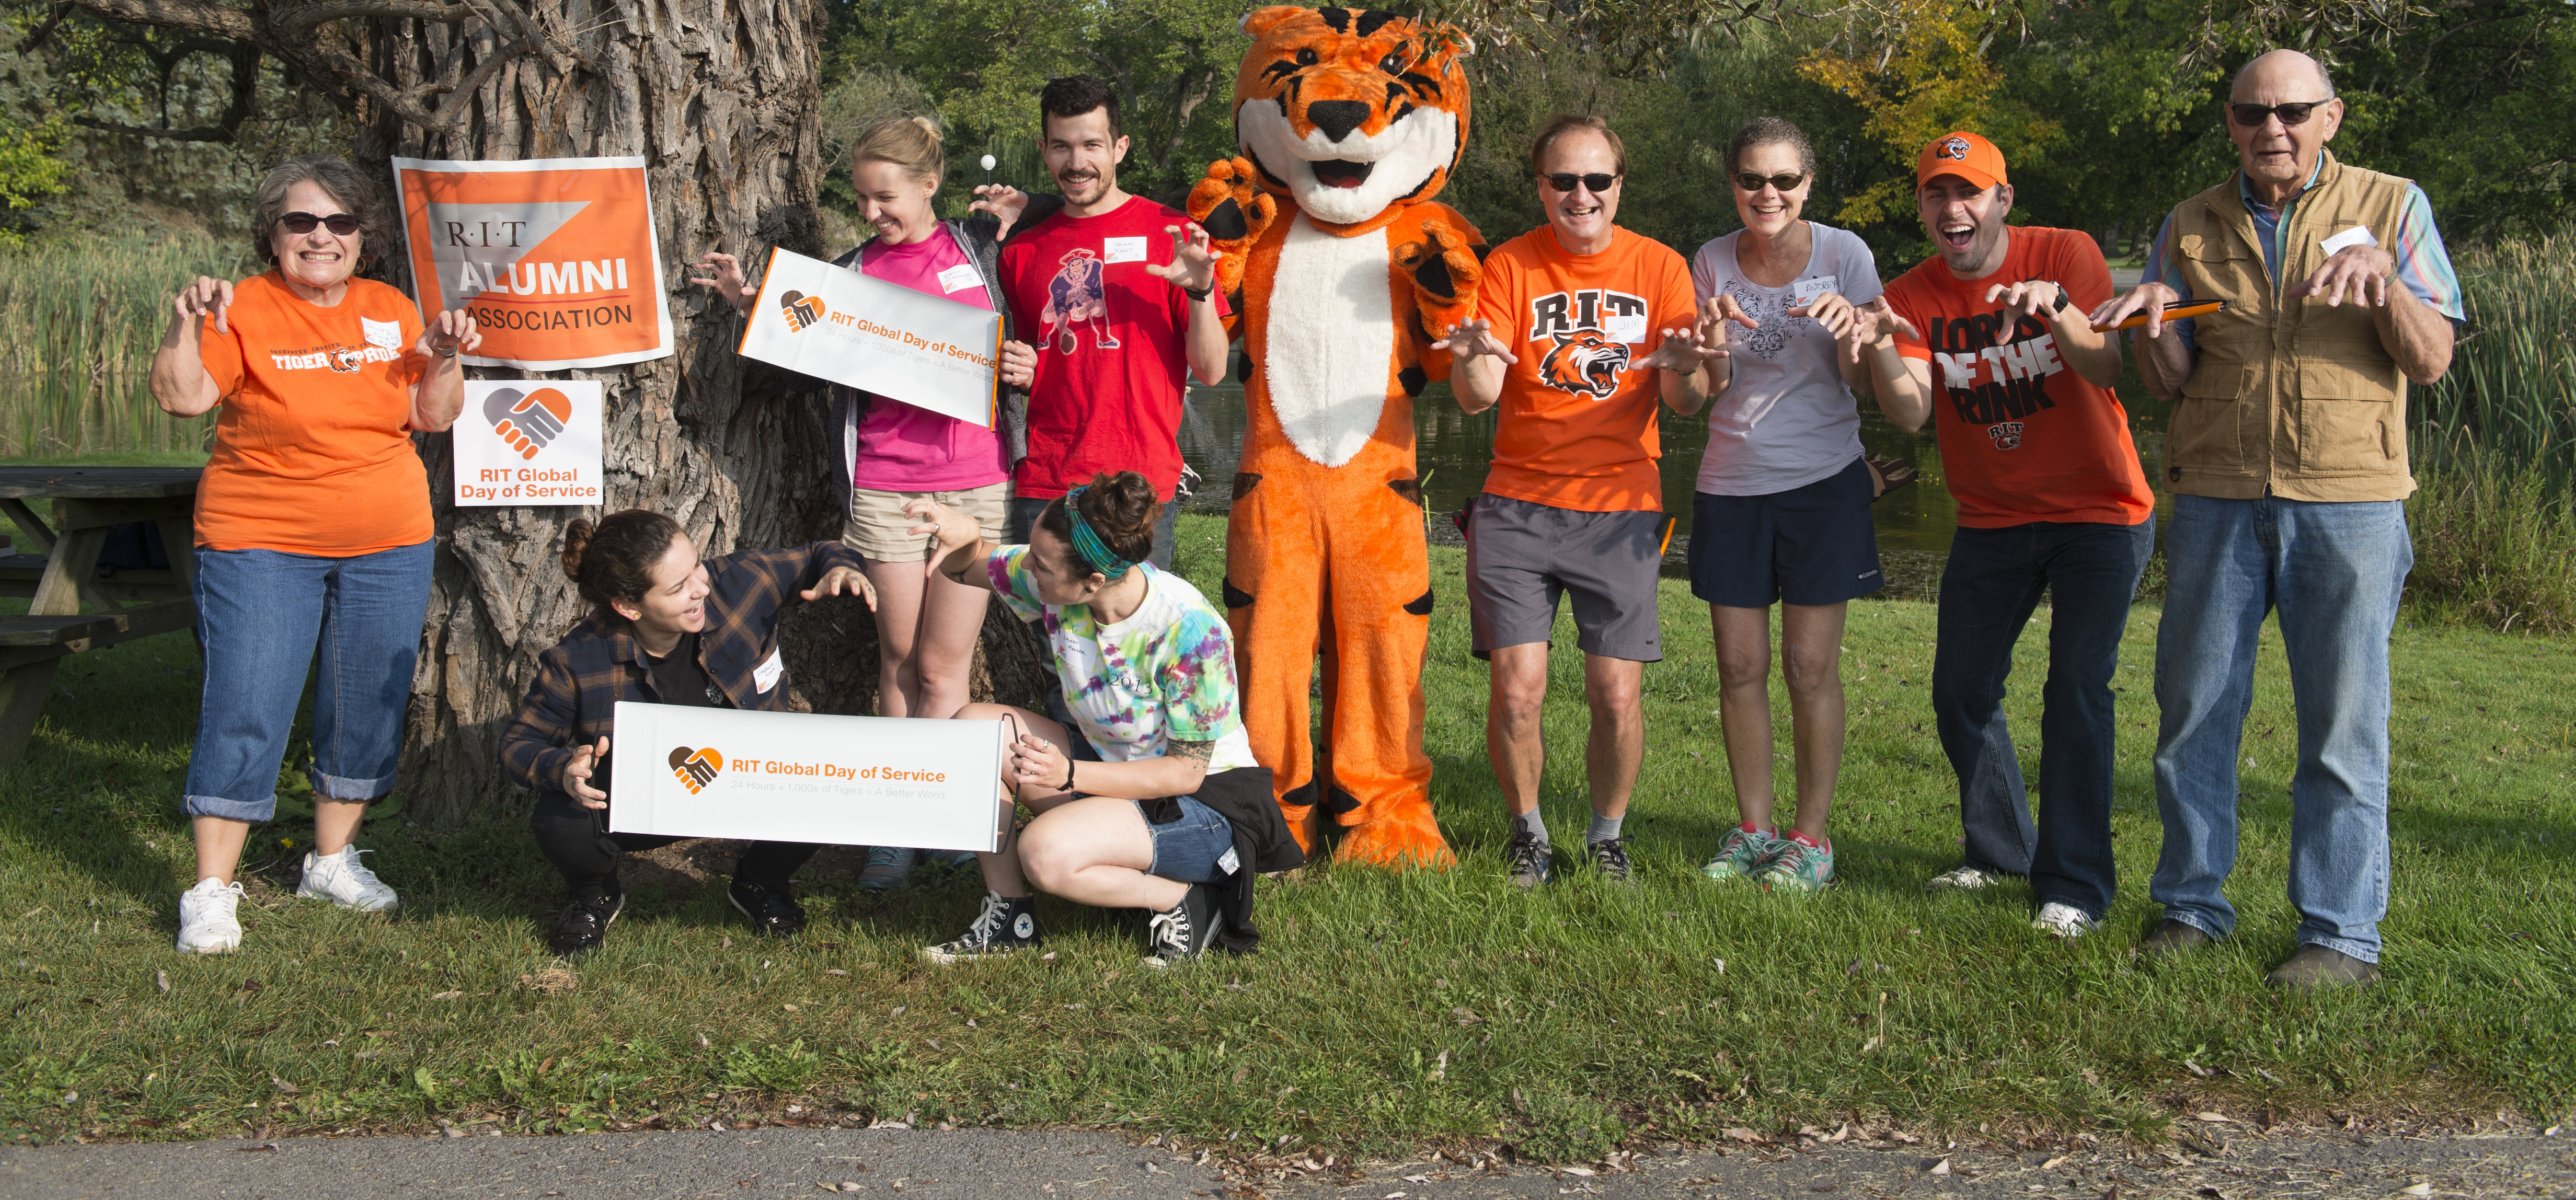 Group of volunteers posing with Richie the RIT Mascot